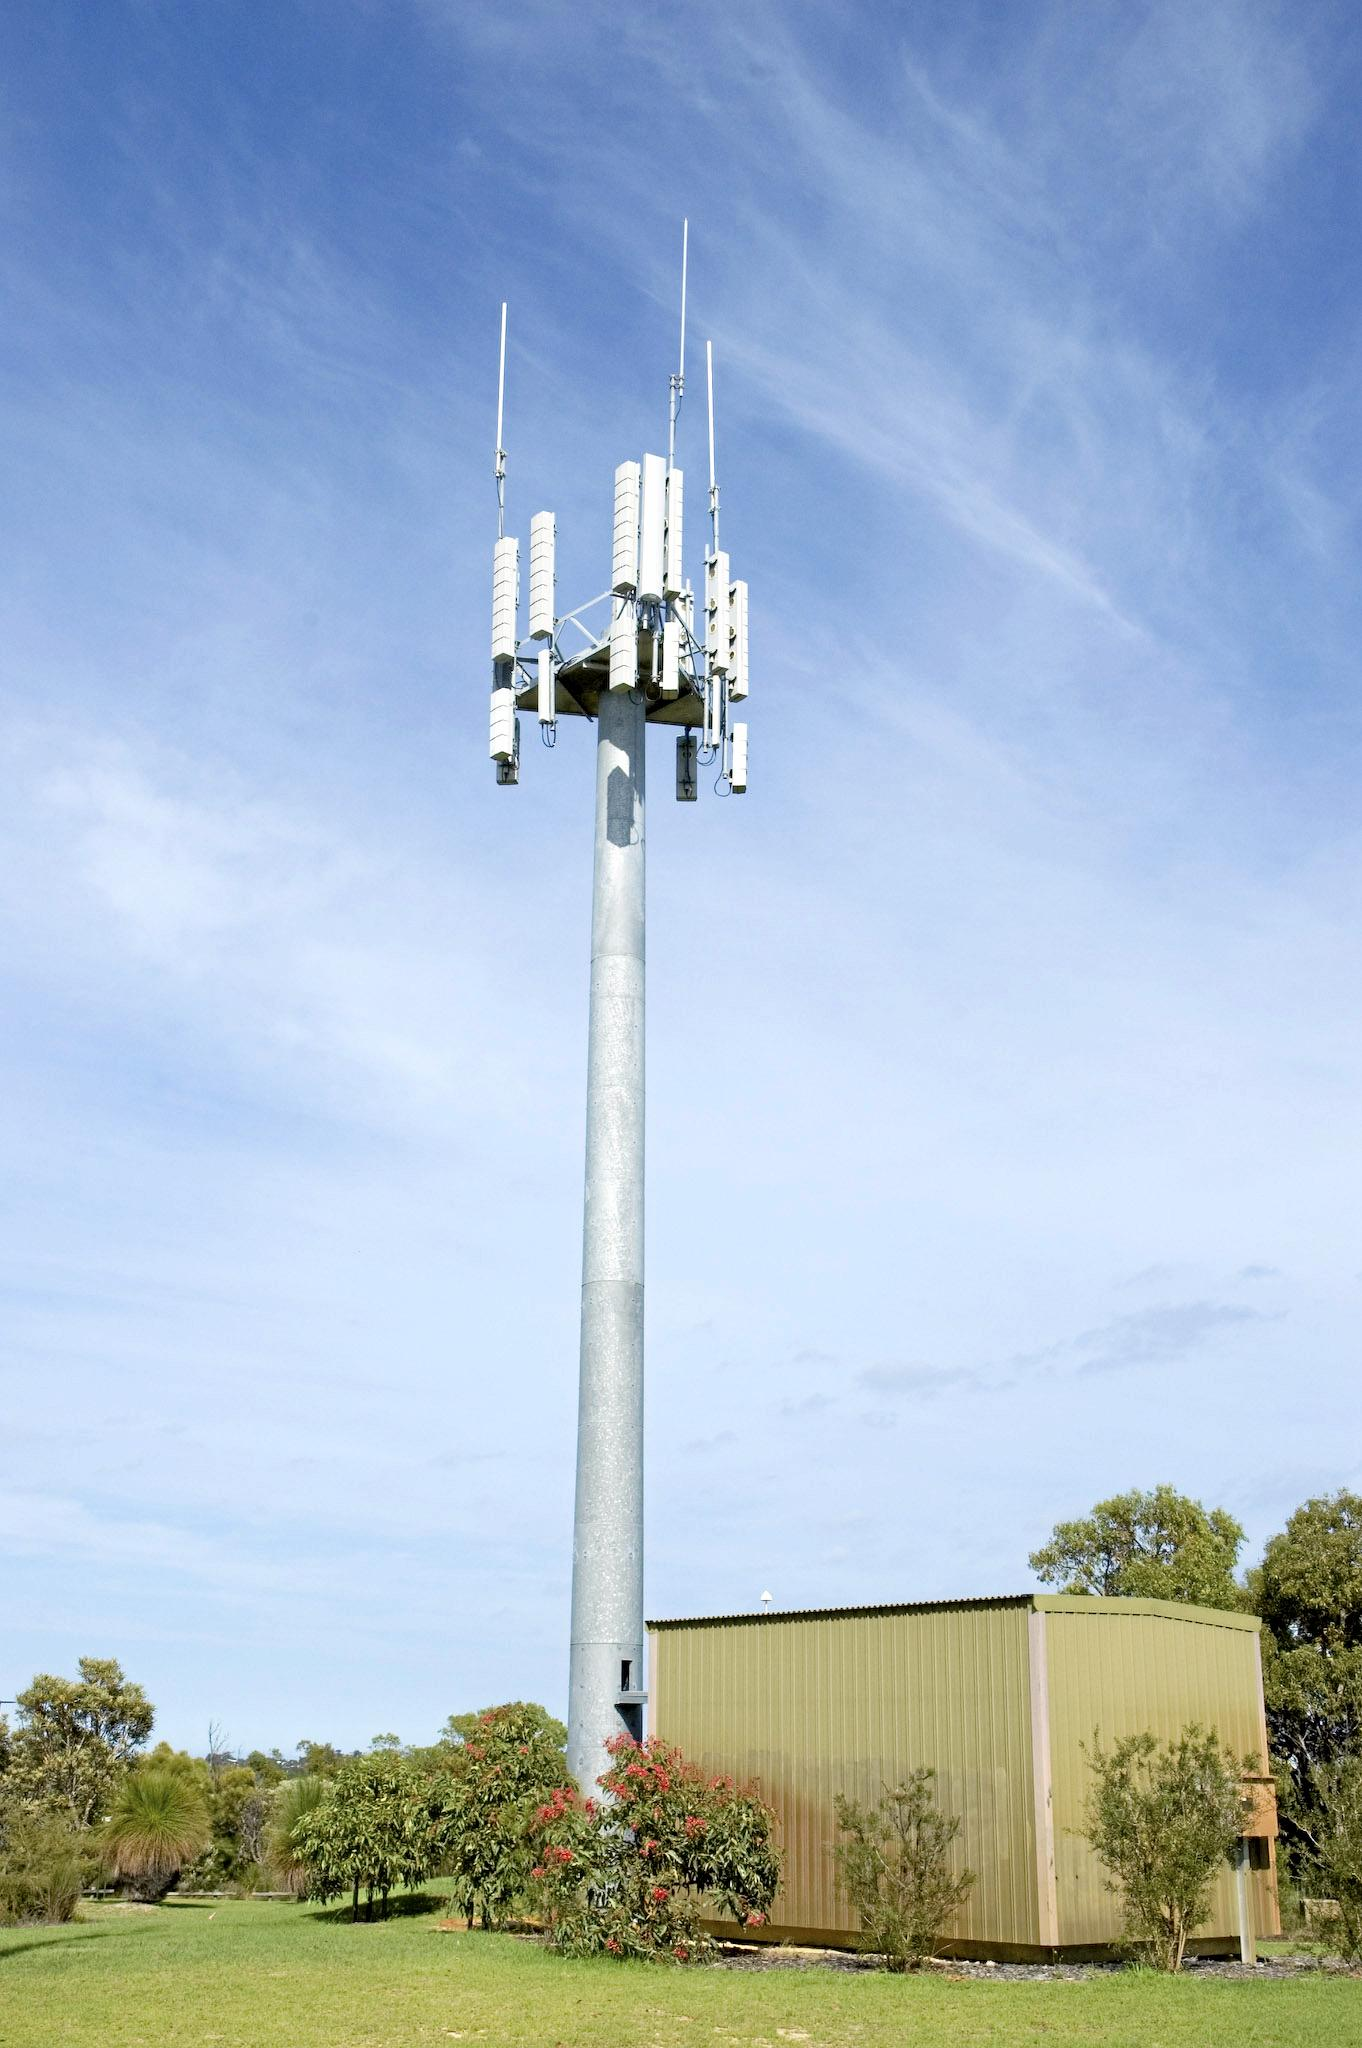 60 new projects are being funded by Telstra to improve mobile reception in northern NSW.